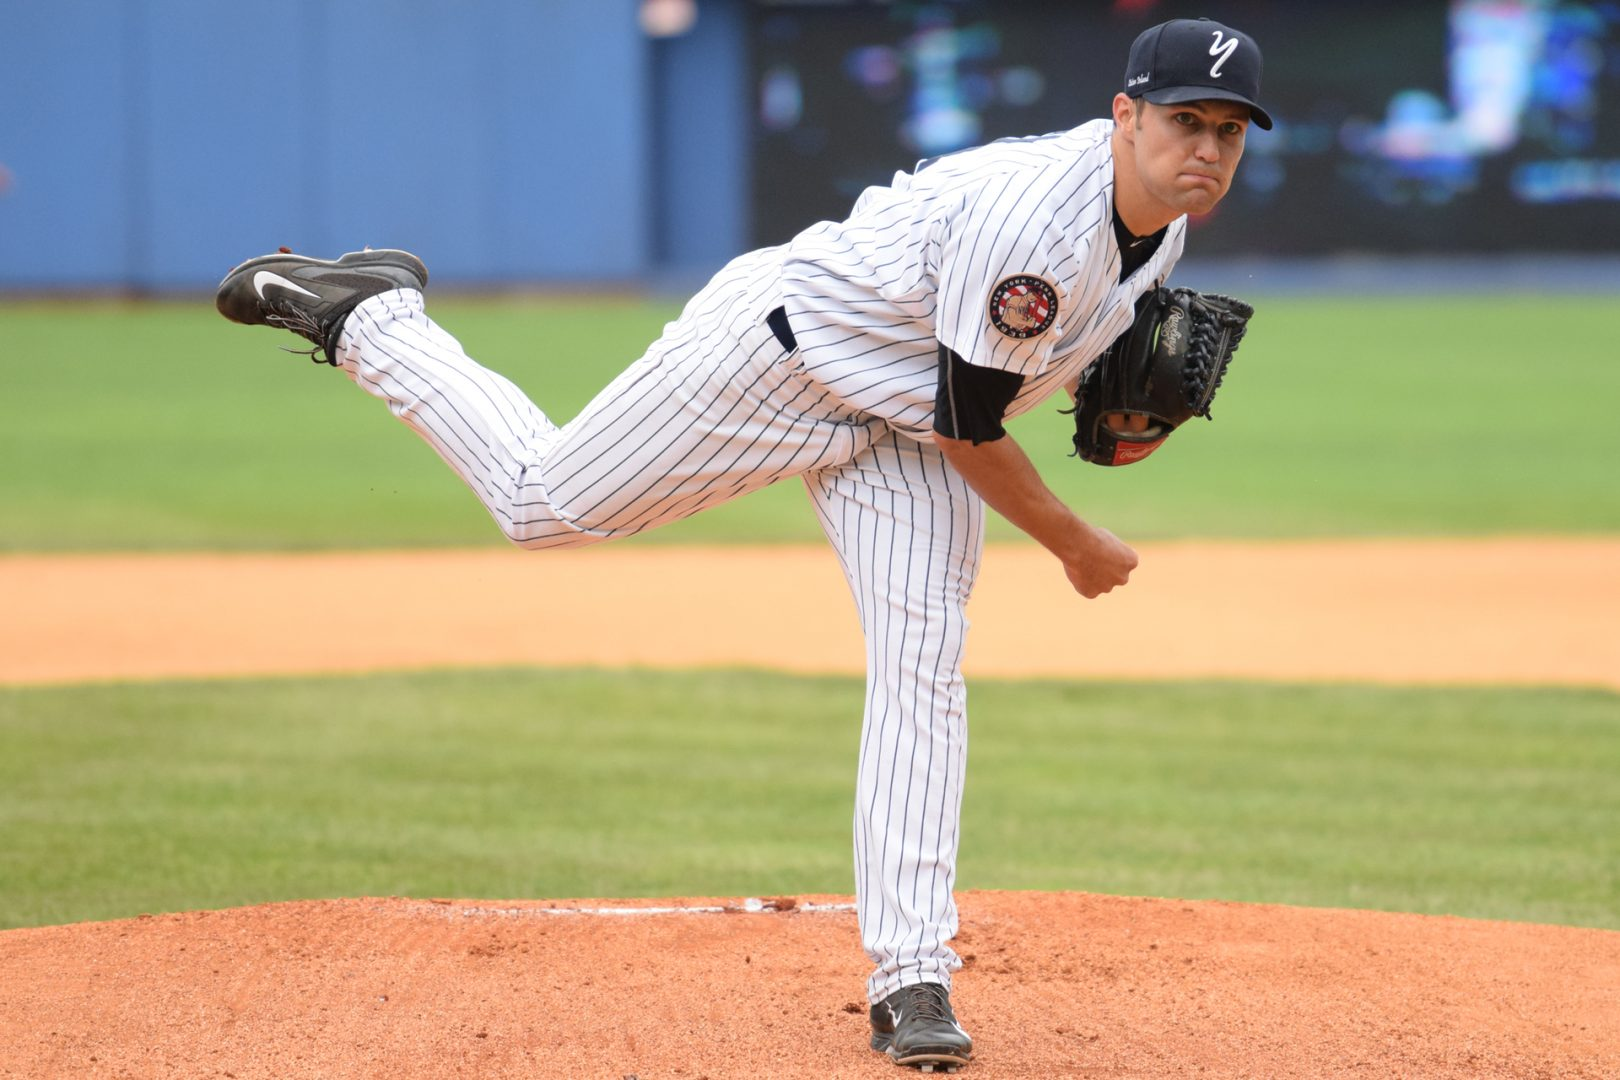 Staten Island Yankees starter Kolton Mahoney became the first Baby Bombers pitcher to throw a complete game since 2010, and the first to pitch 9-innings in over a decade. (Robert M. Pimpsner)